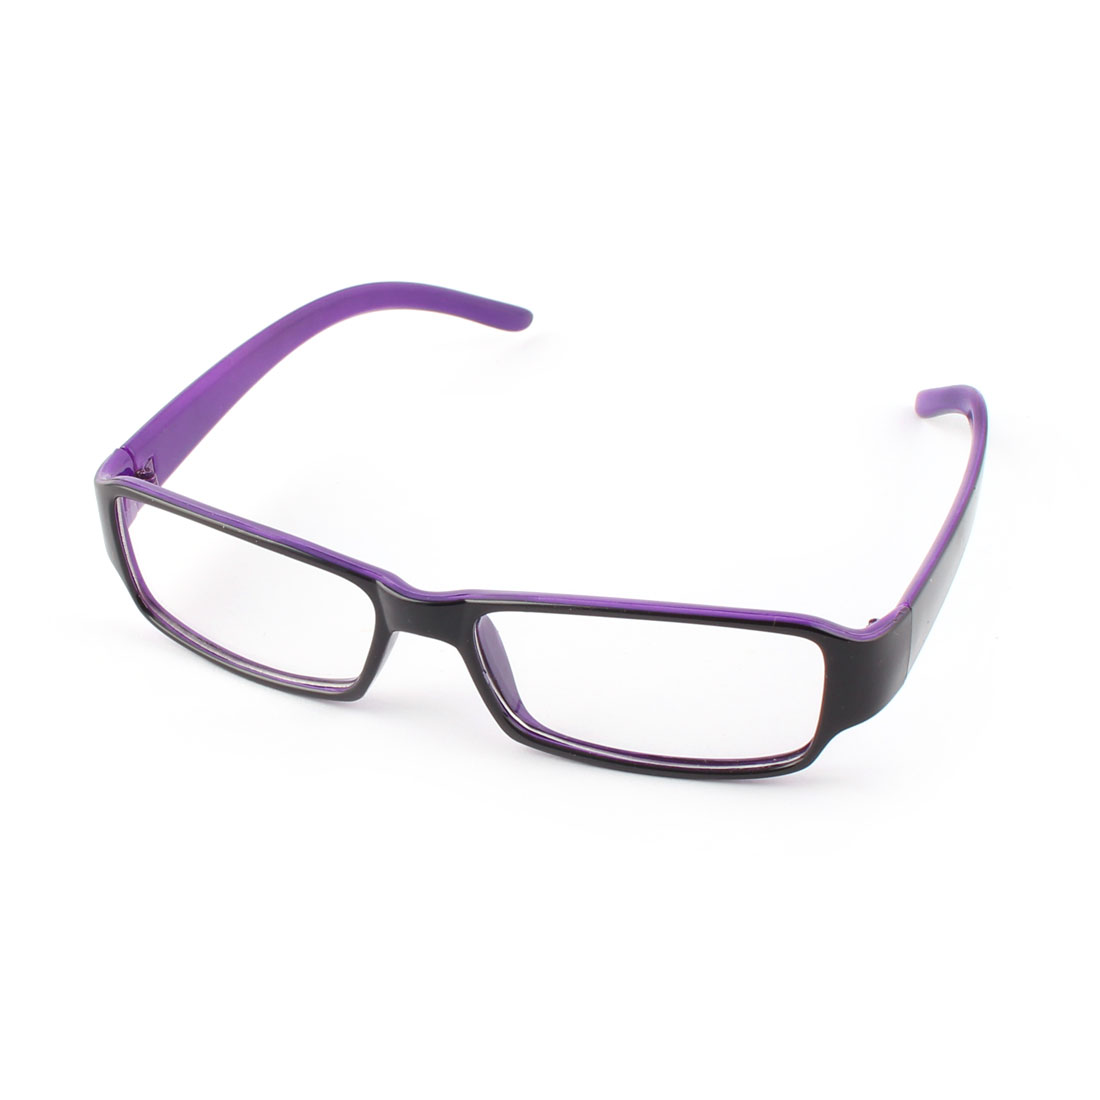 Lady Plastic Rectangle Clear Lens Plain Glasses Eyeglasses Purple w Case